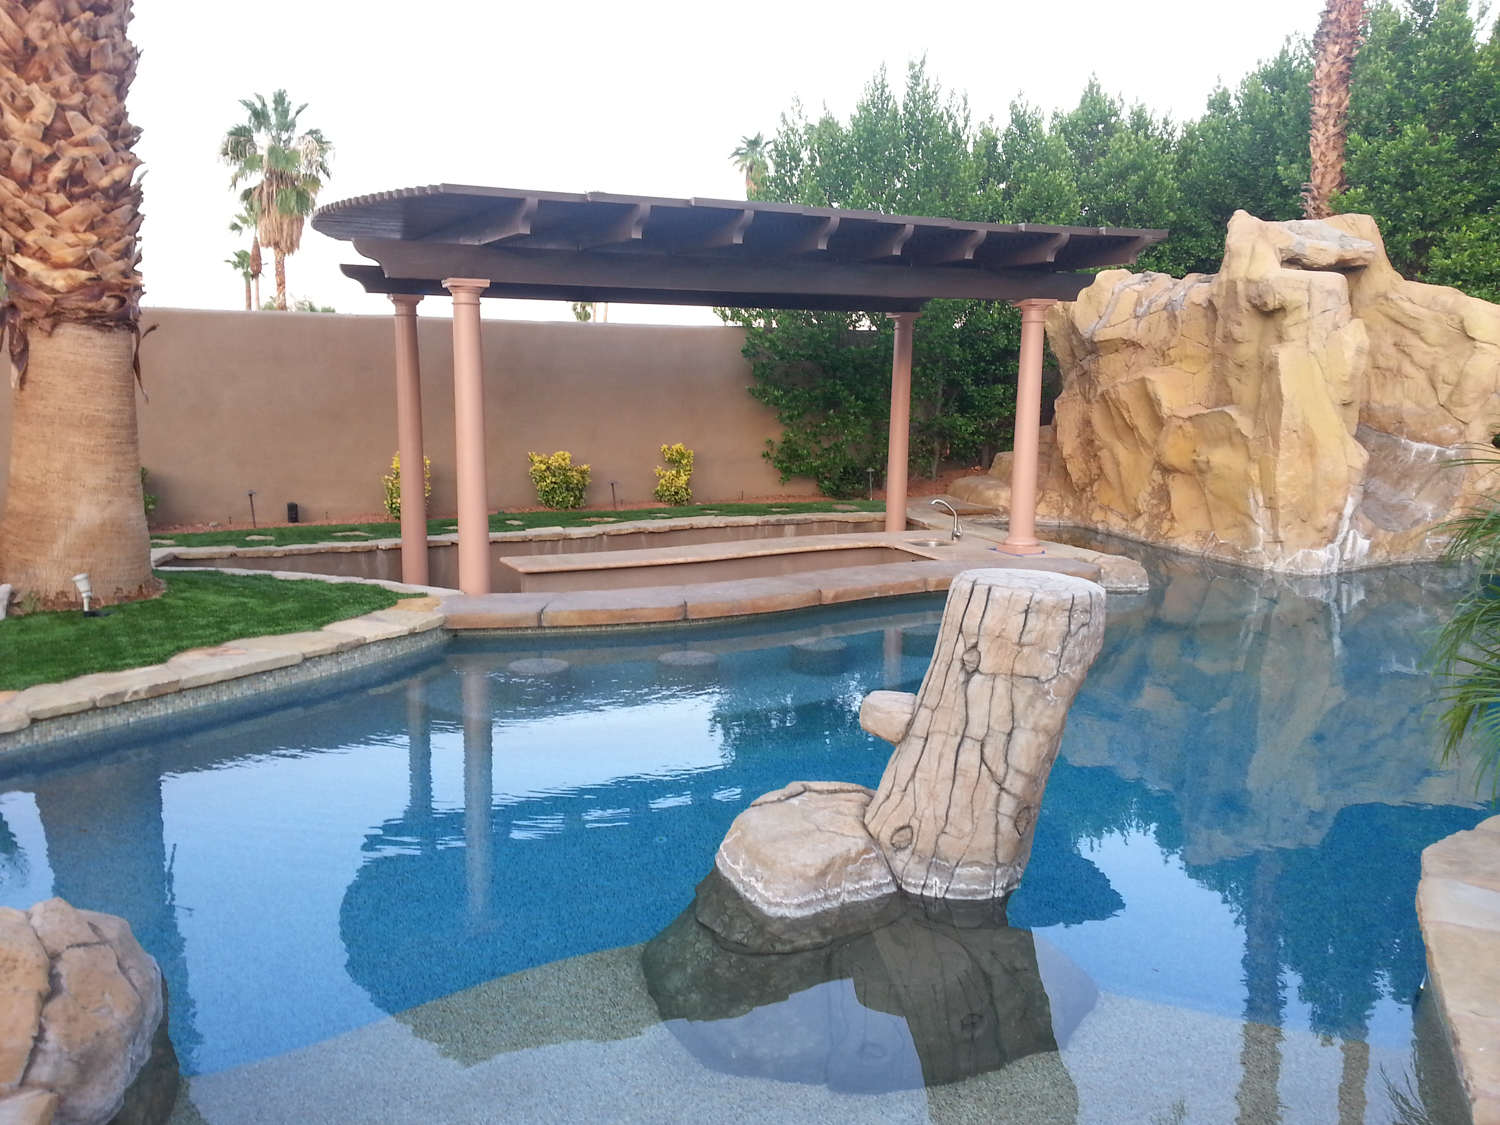 Freestanding Gazebo Patio Cover with Fiberglass Poles, Indian Wells, CA